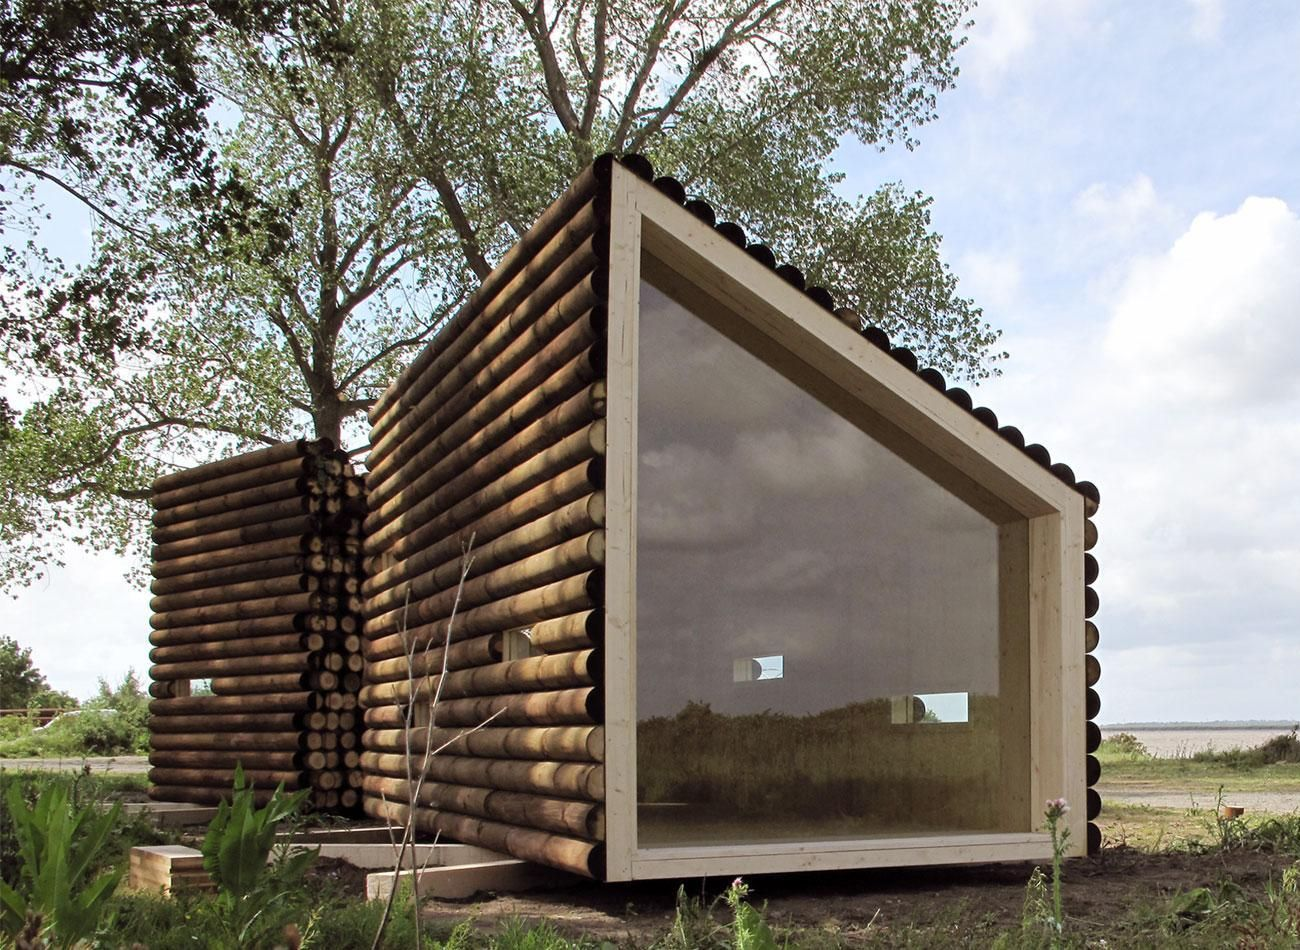 ^ 1000+ images about pre fab modular on Pinterest Game of ...